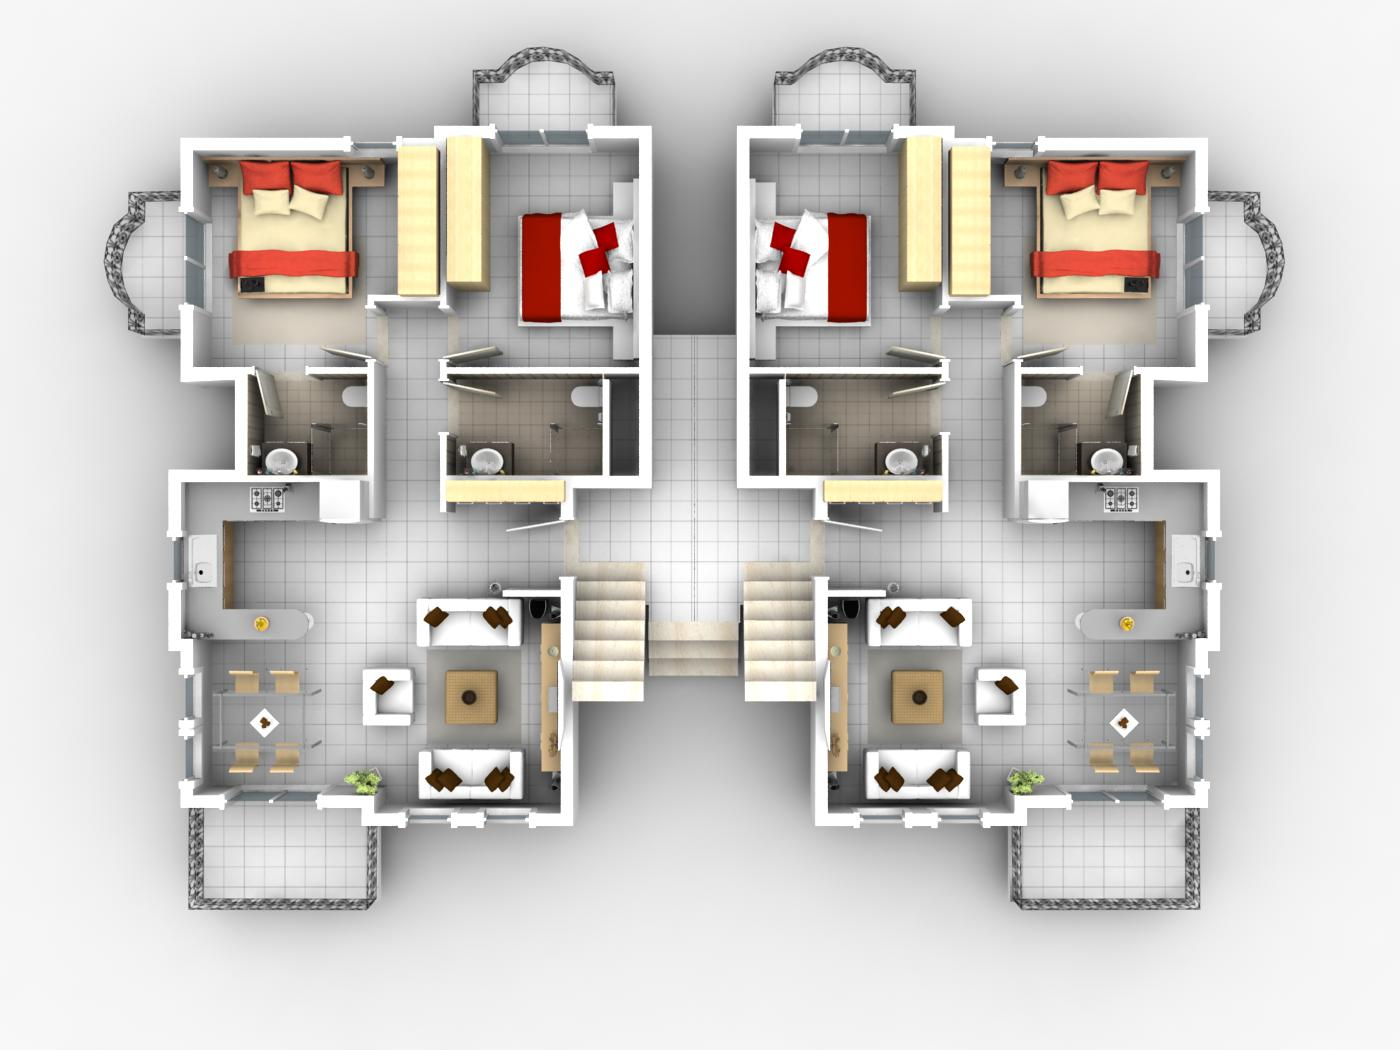 Apartments-floor-plans-software-unique-house-plans.jpg